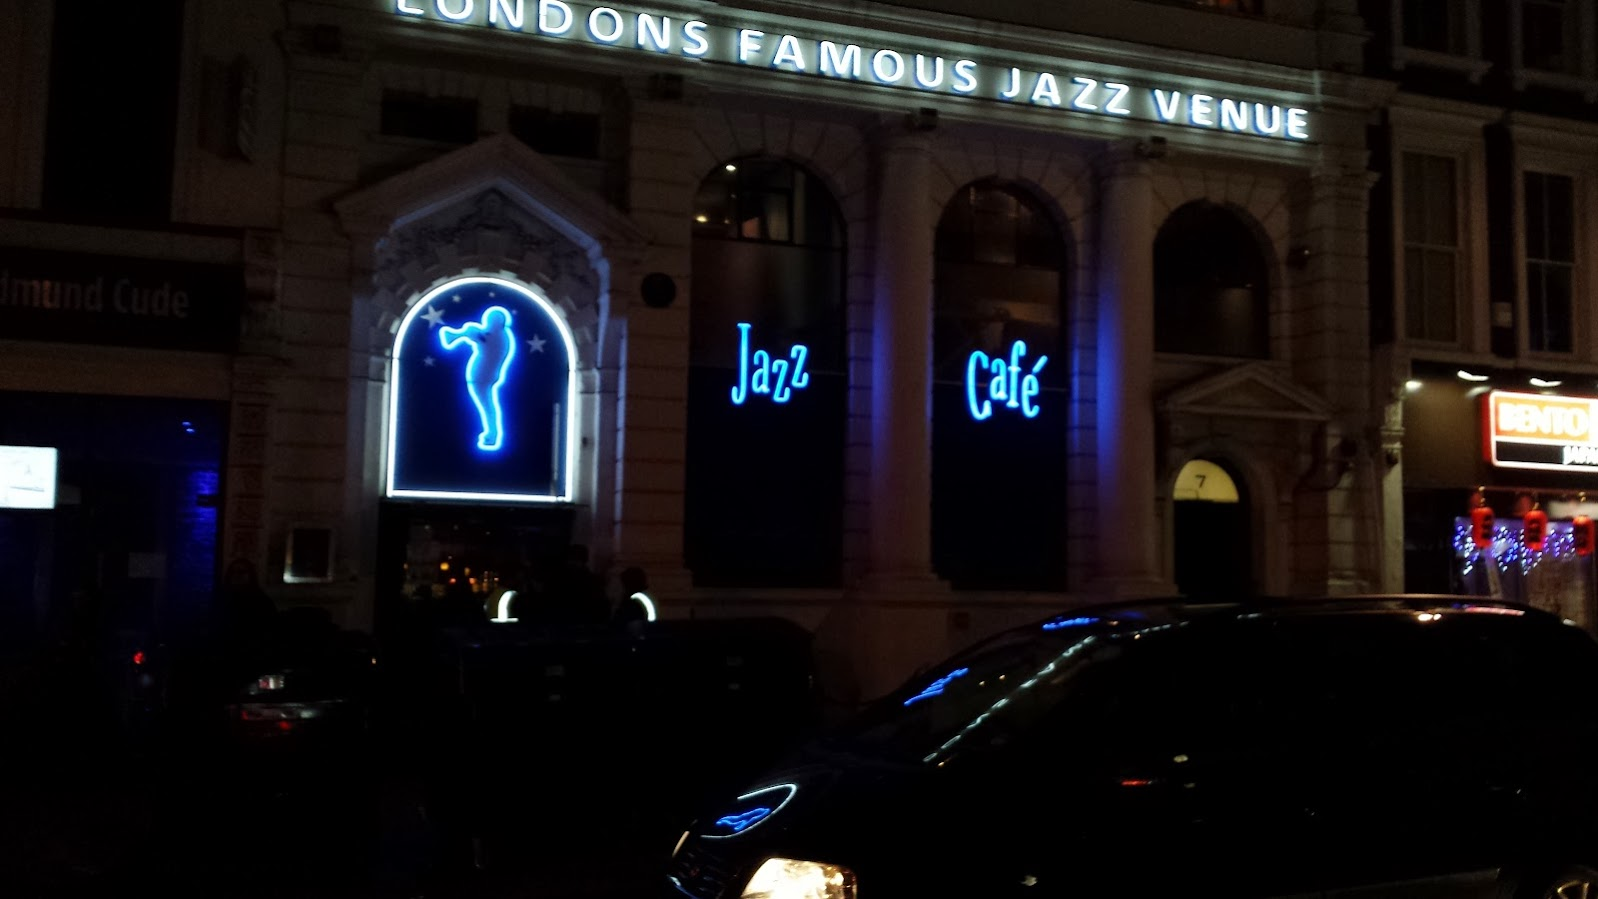 London's Famous Jazz Venue